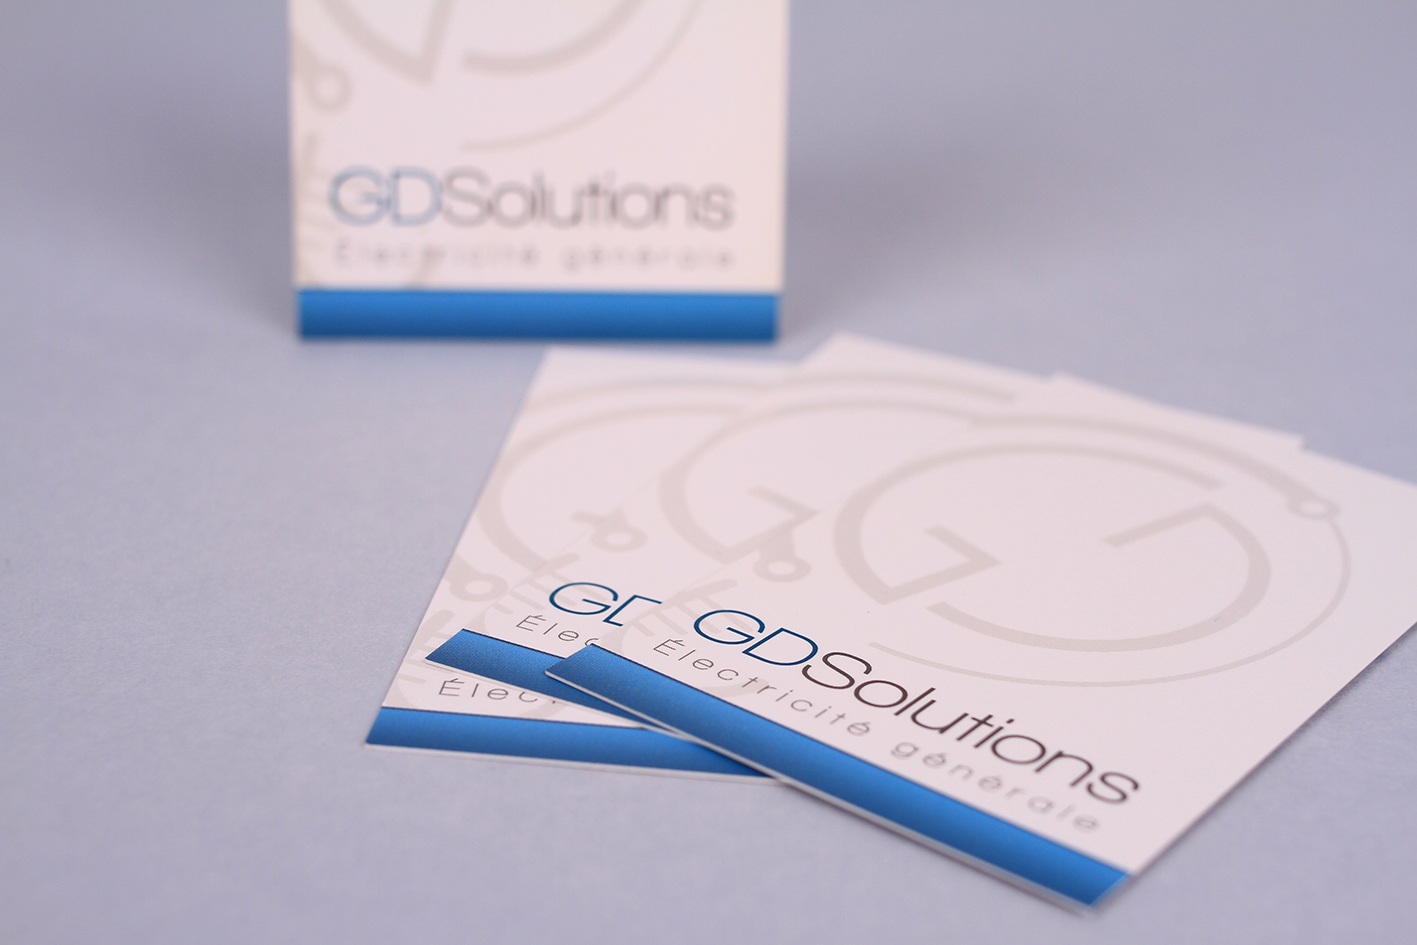 GD Solution • Corporate 2010